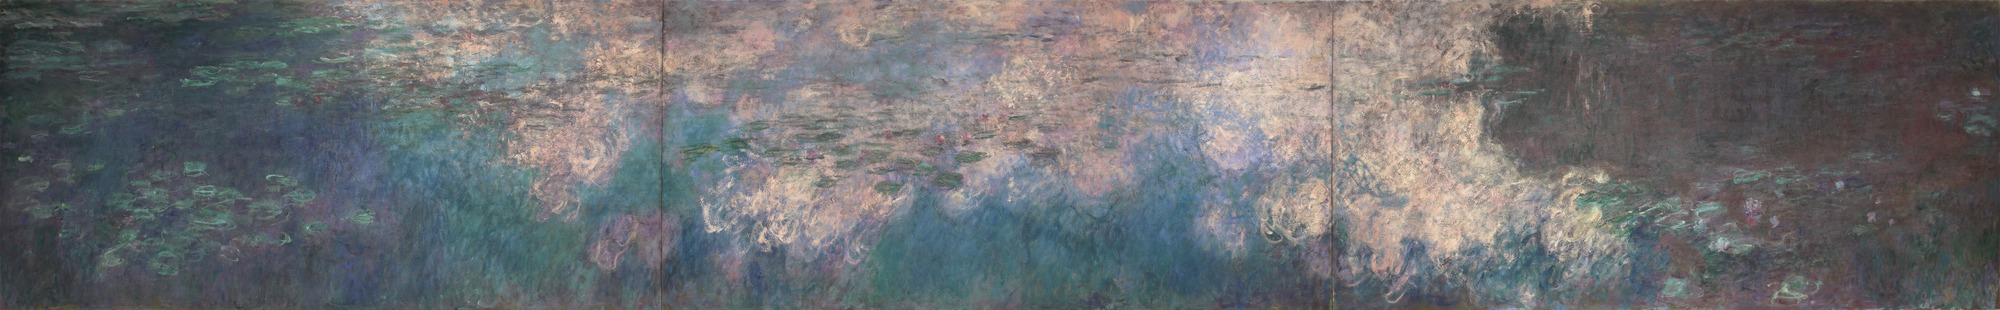 "Claude Monet, ""Water Lilies,"" 1914-26."